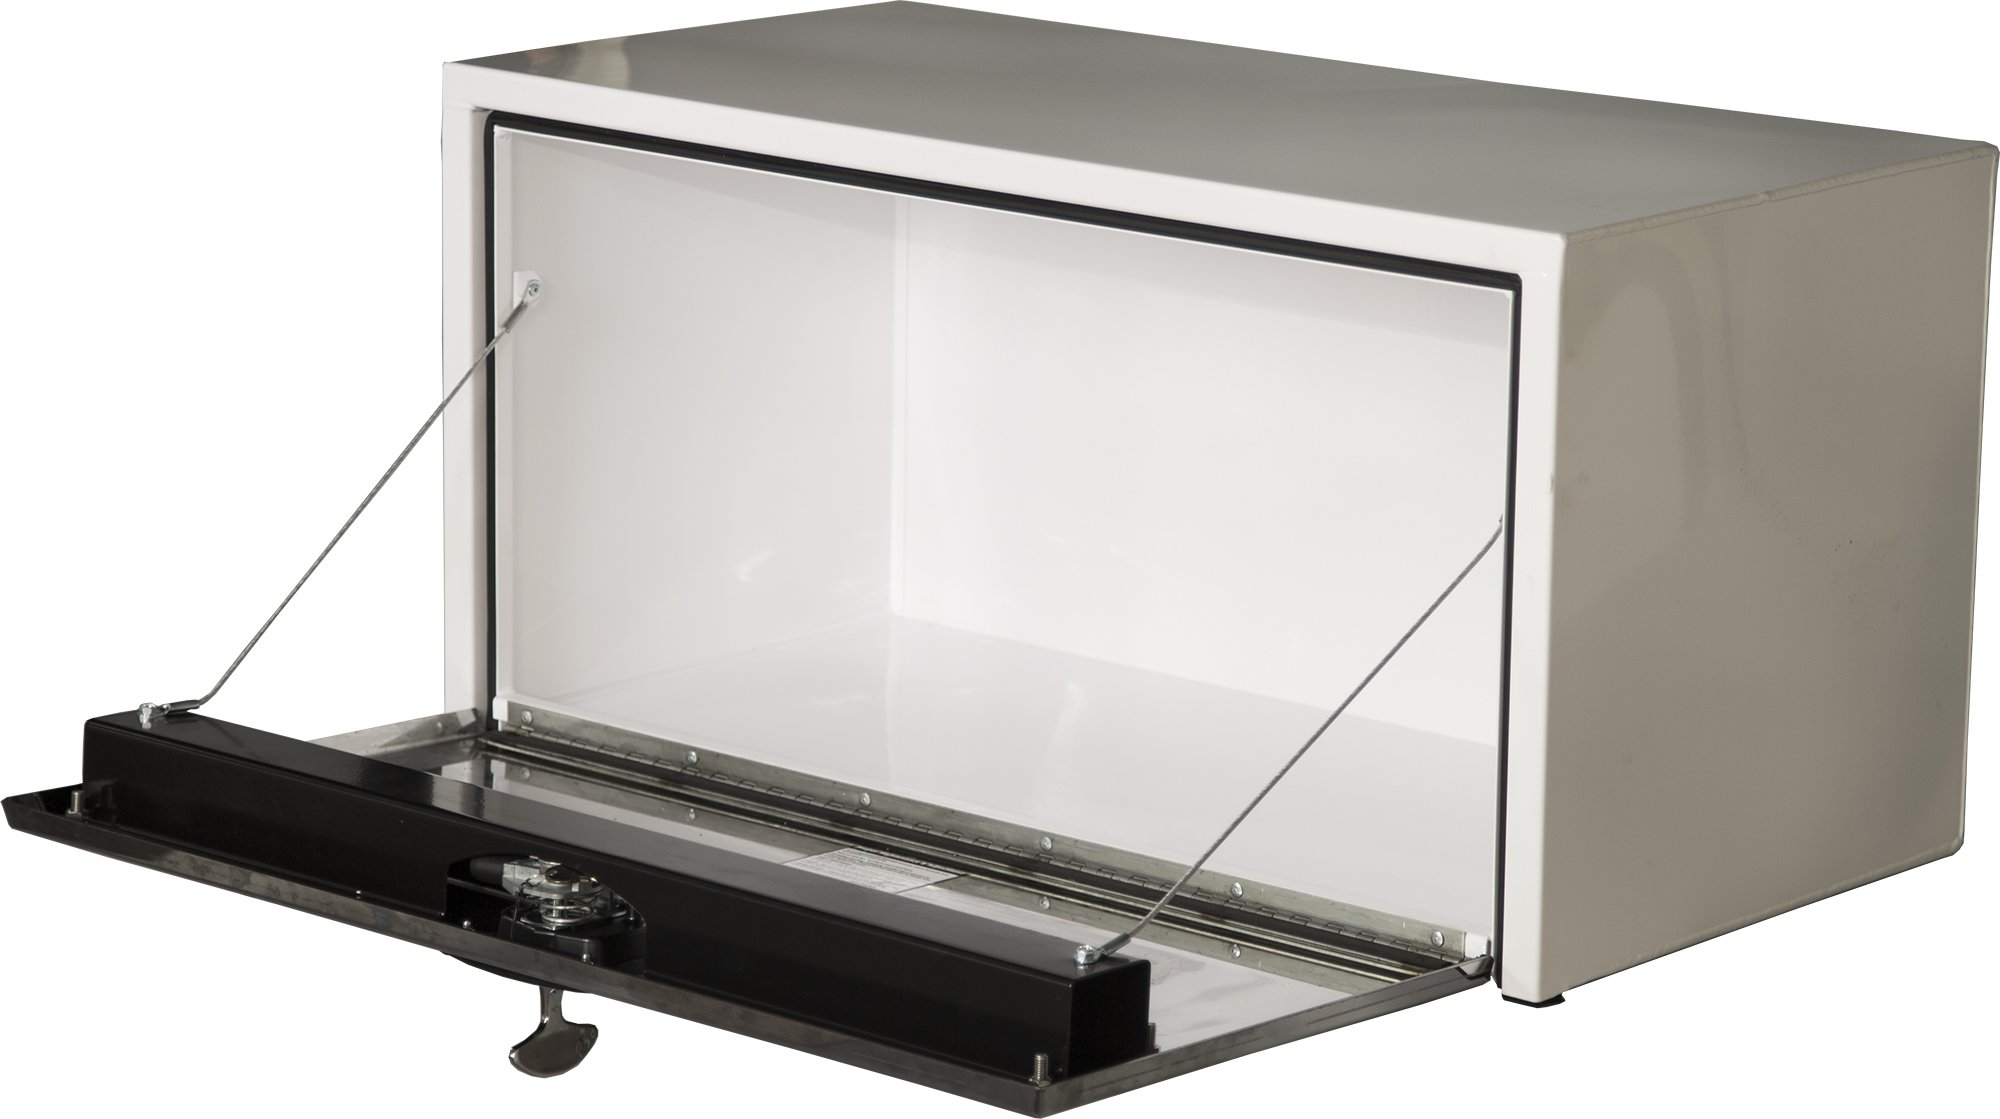 Buyers Products White Steel Underbody Truck Box w/Stainless Steel Door (18x18x48 Inch) by Buyers Products (Image #2)